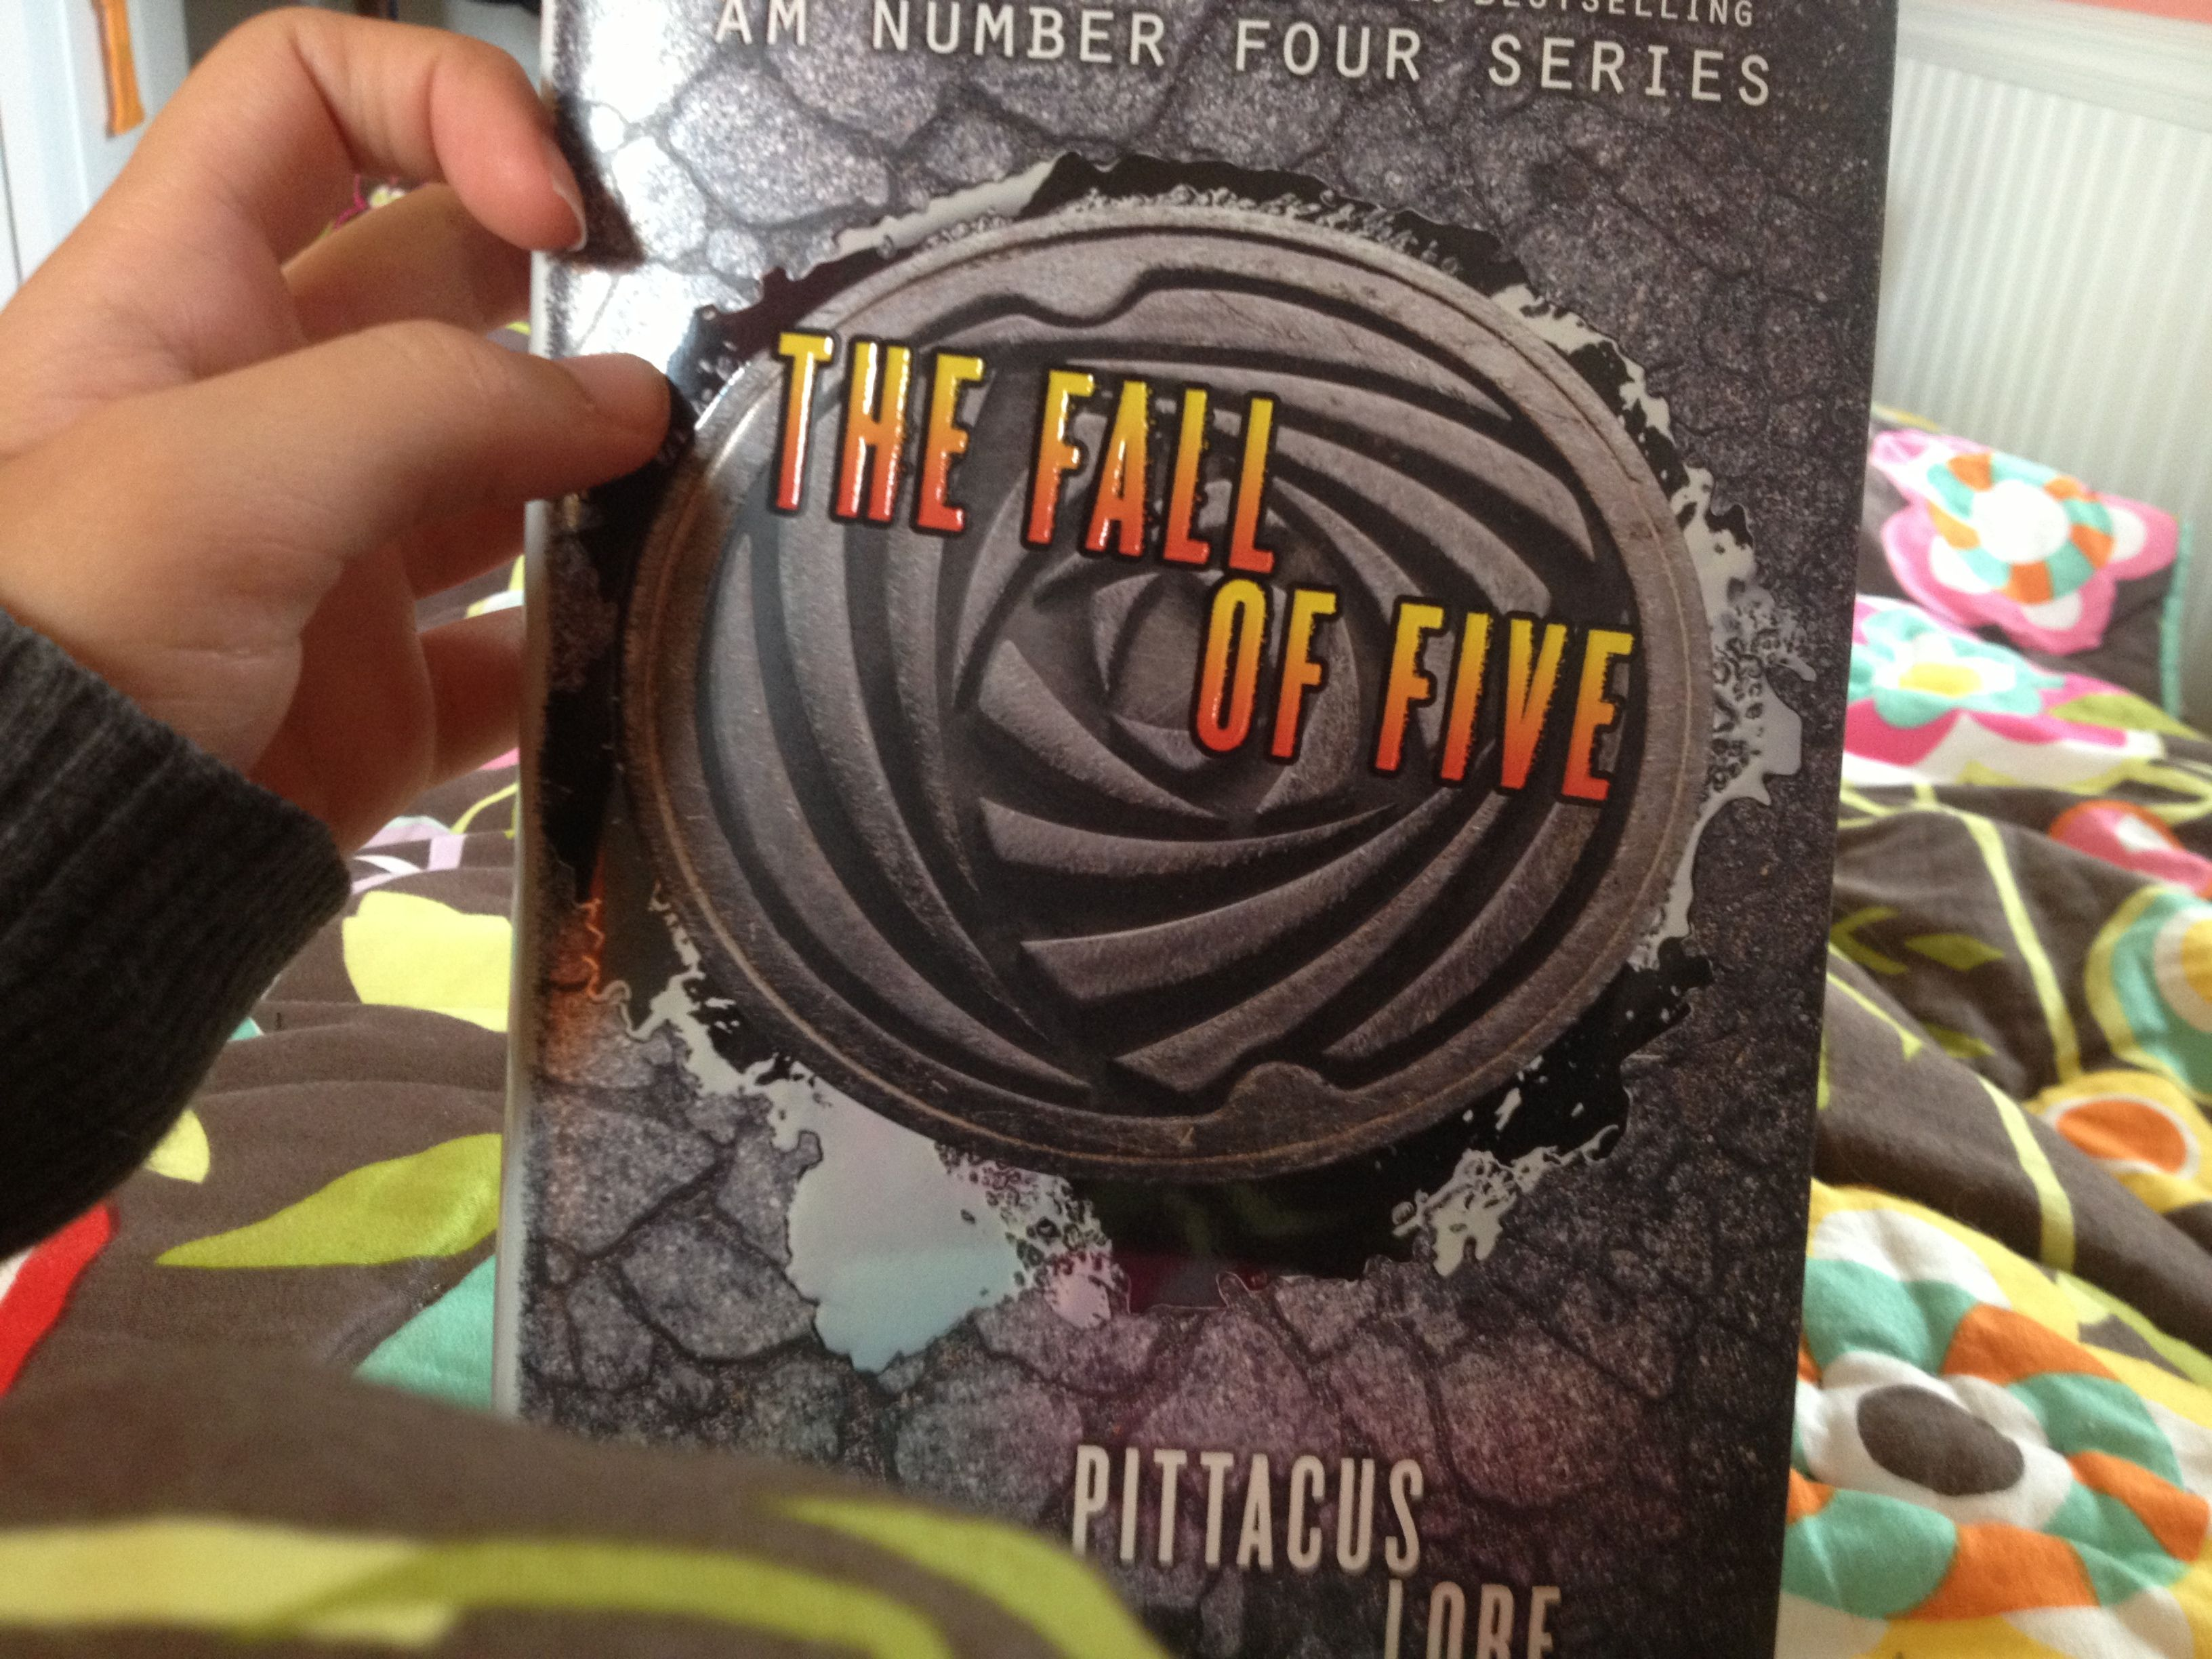 Fall of five got the book today cx